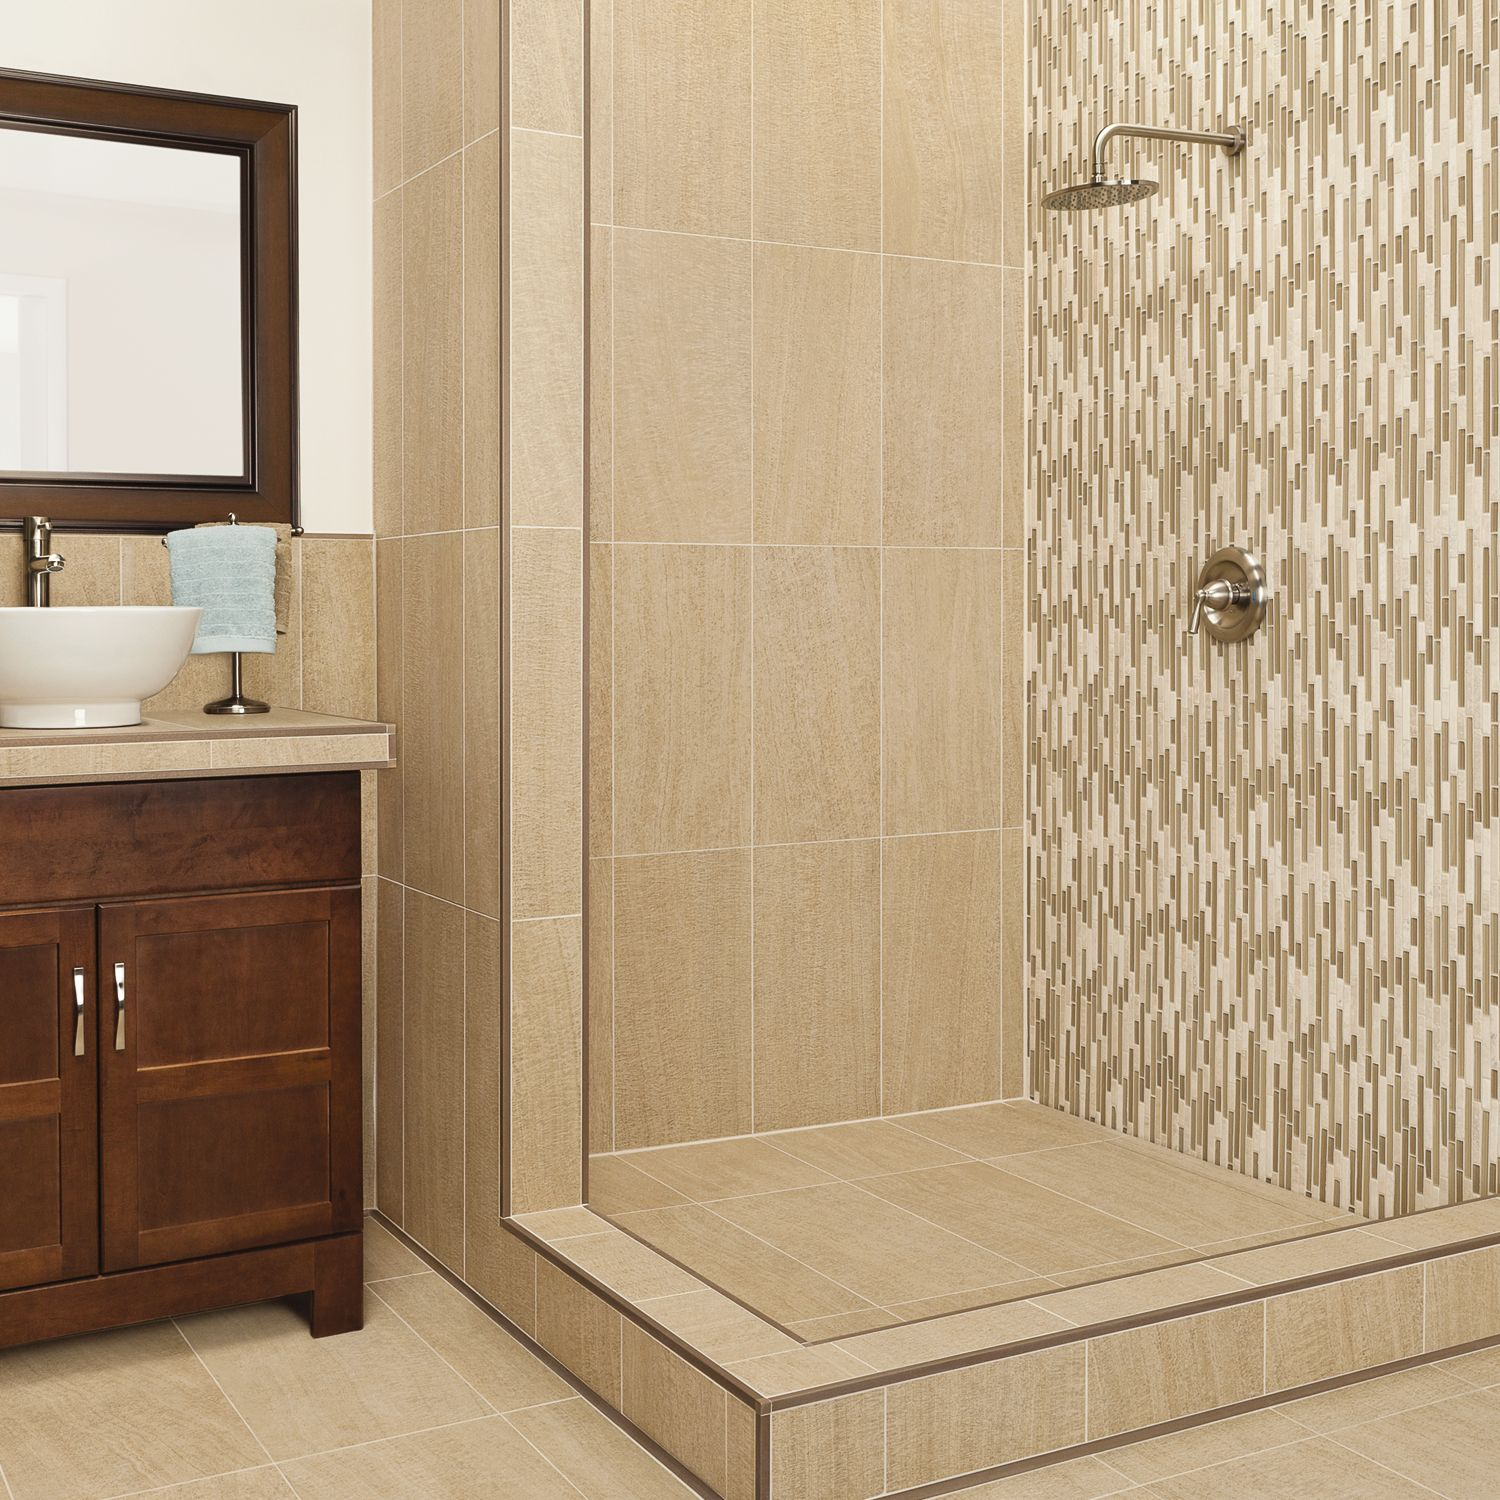 Tile Bathroom Trim schluter | homepage